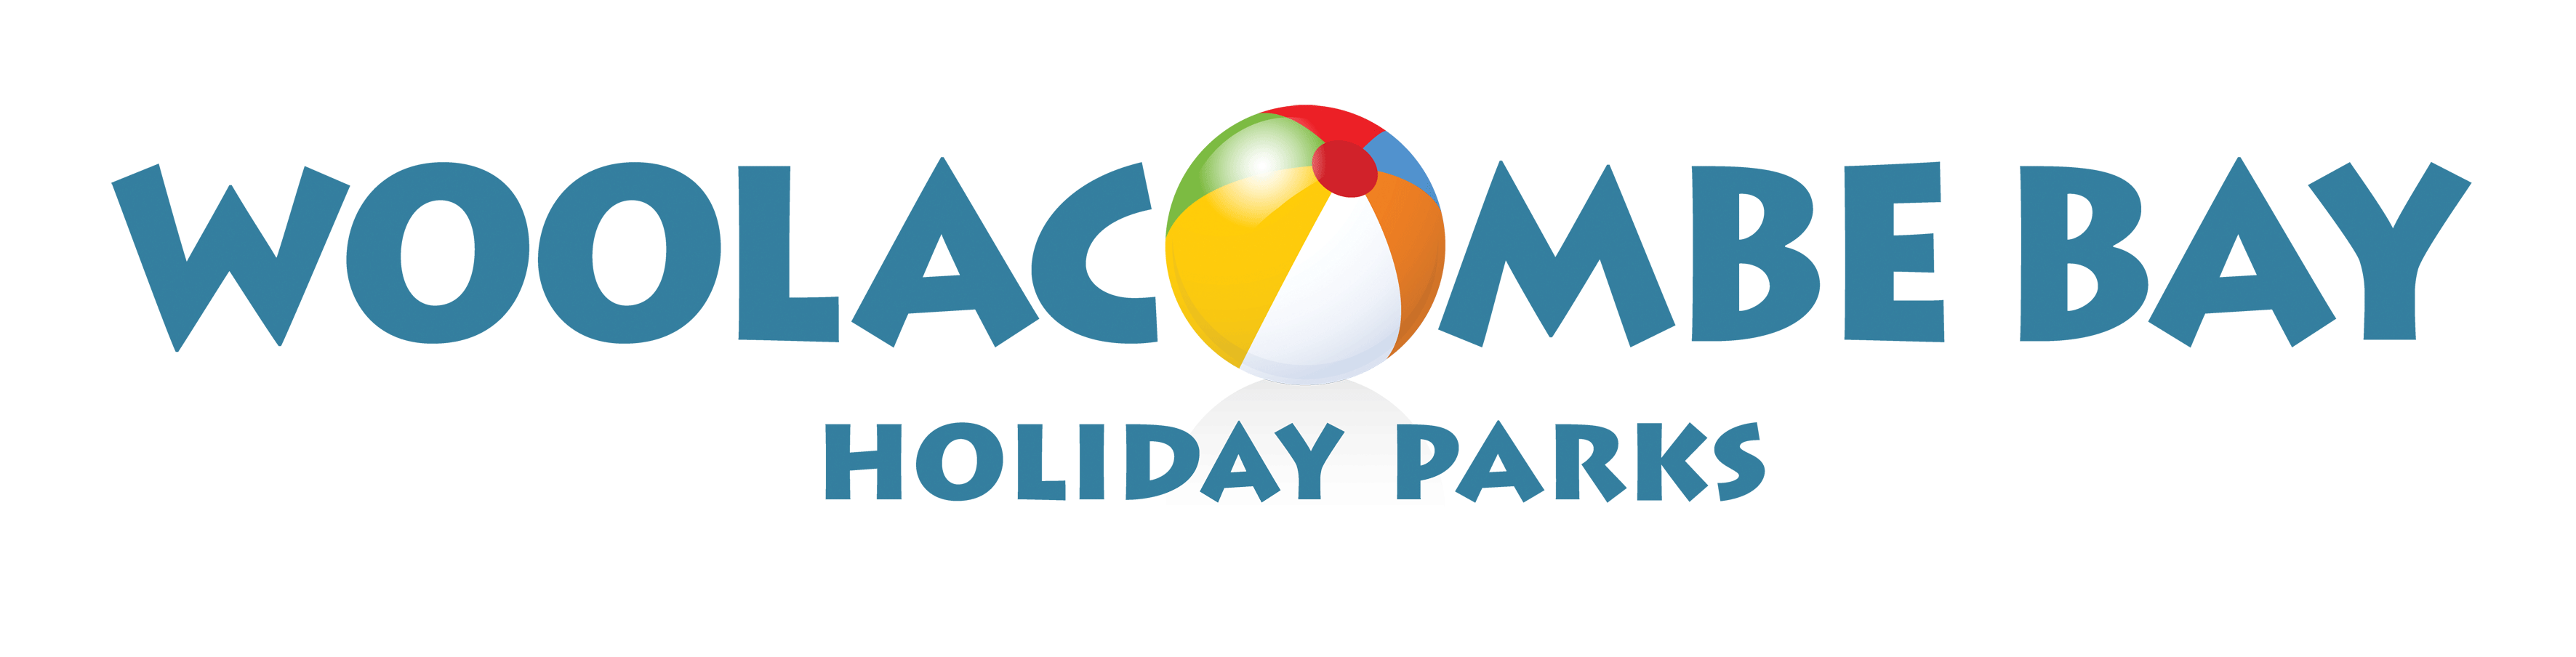 Woolacombe Bay Holiday Parks Recruitment